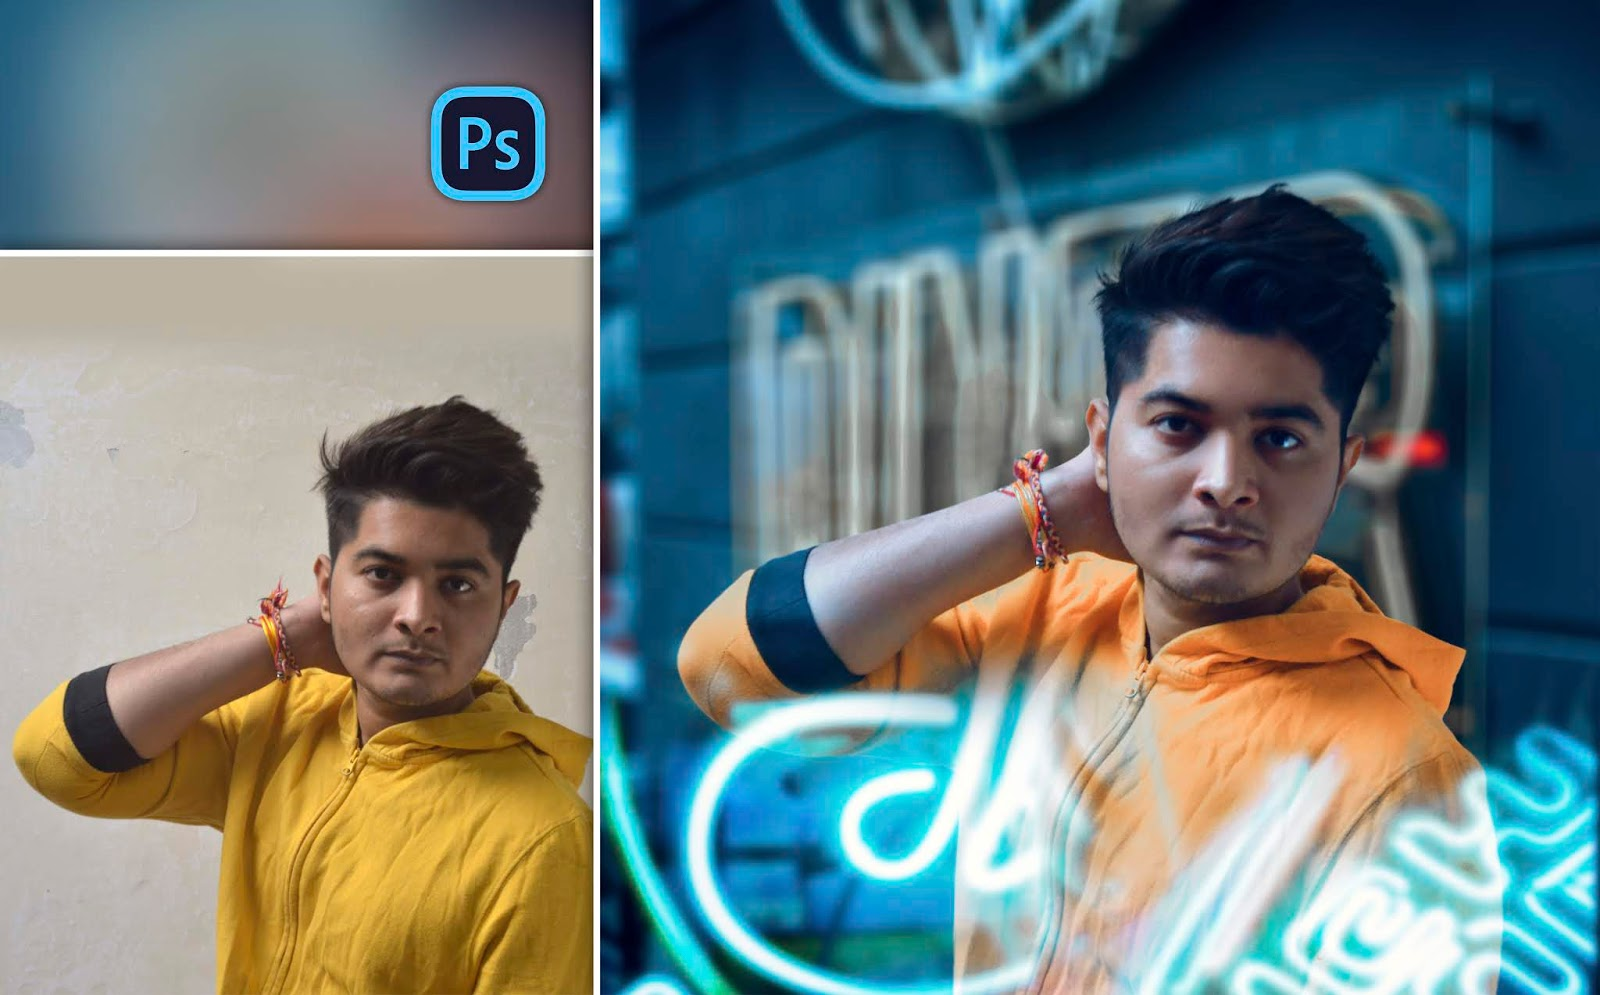 Trending Neon Moody Portraits of Instagram Photo Editing in Photoshop | Arcade Neon Portrait Style Photo Editing